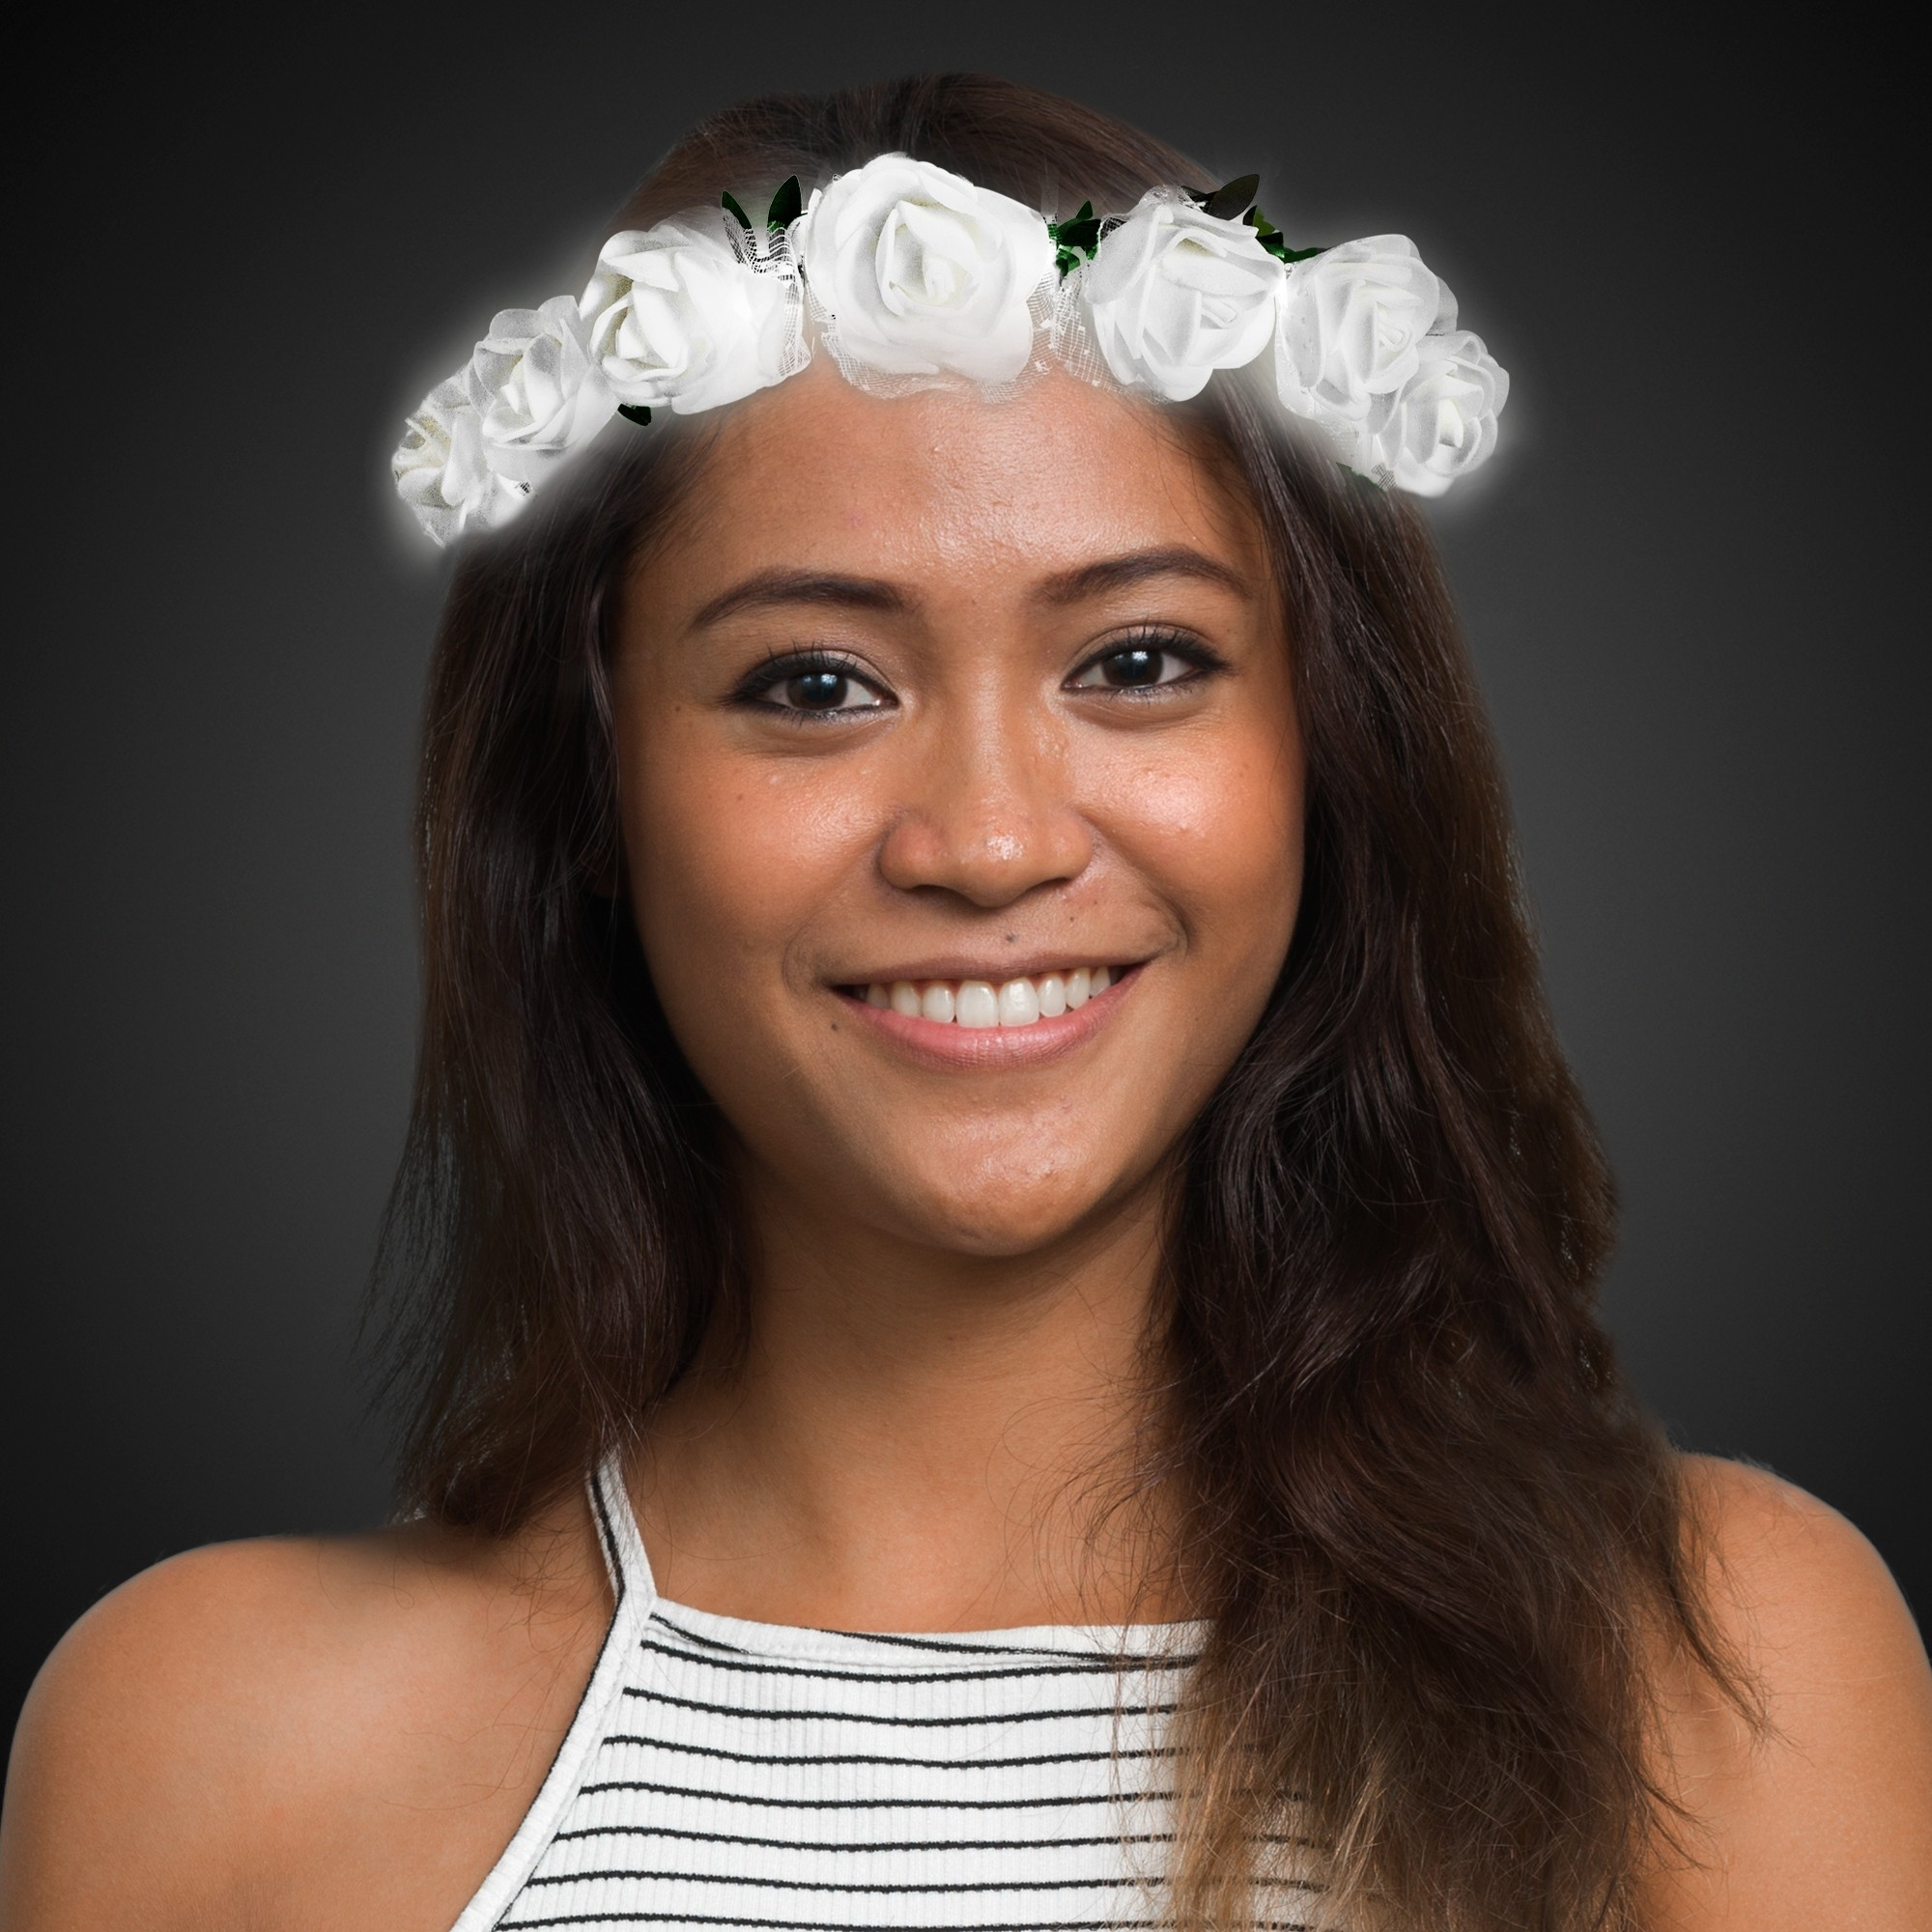 White Roses LED Halo Headband